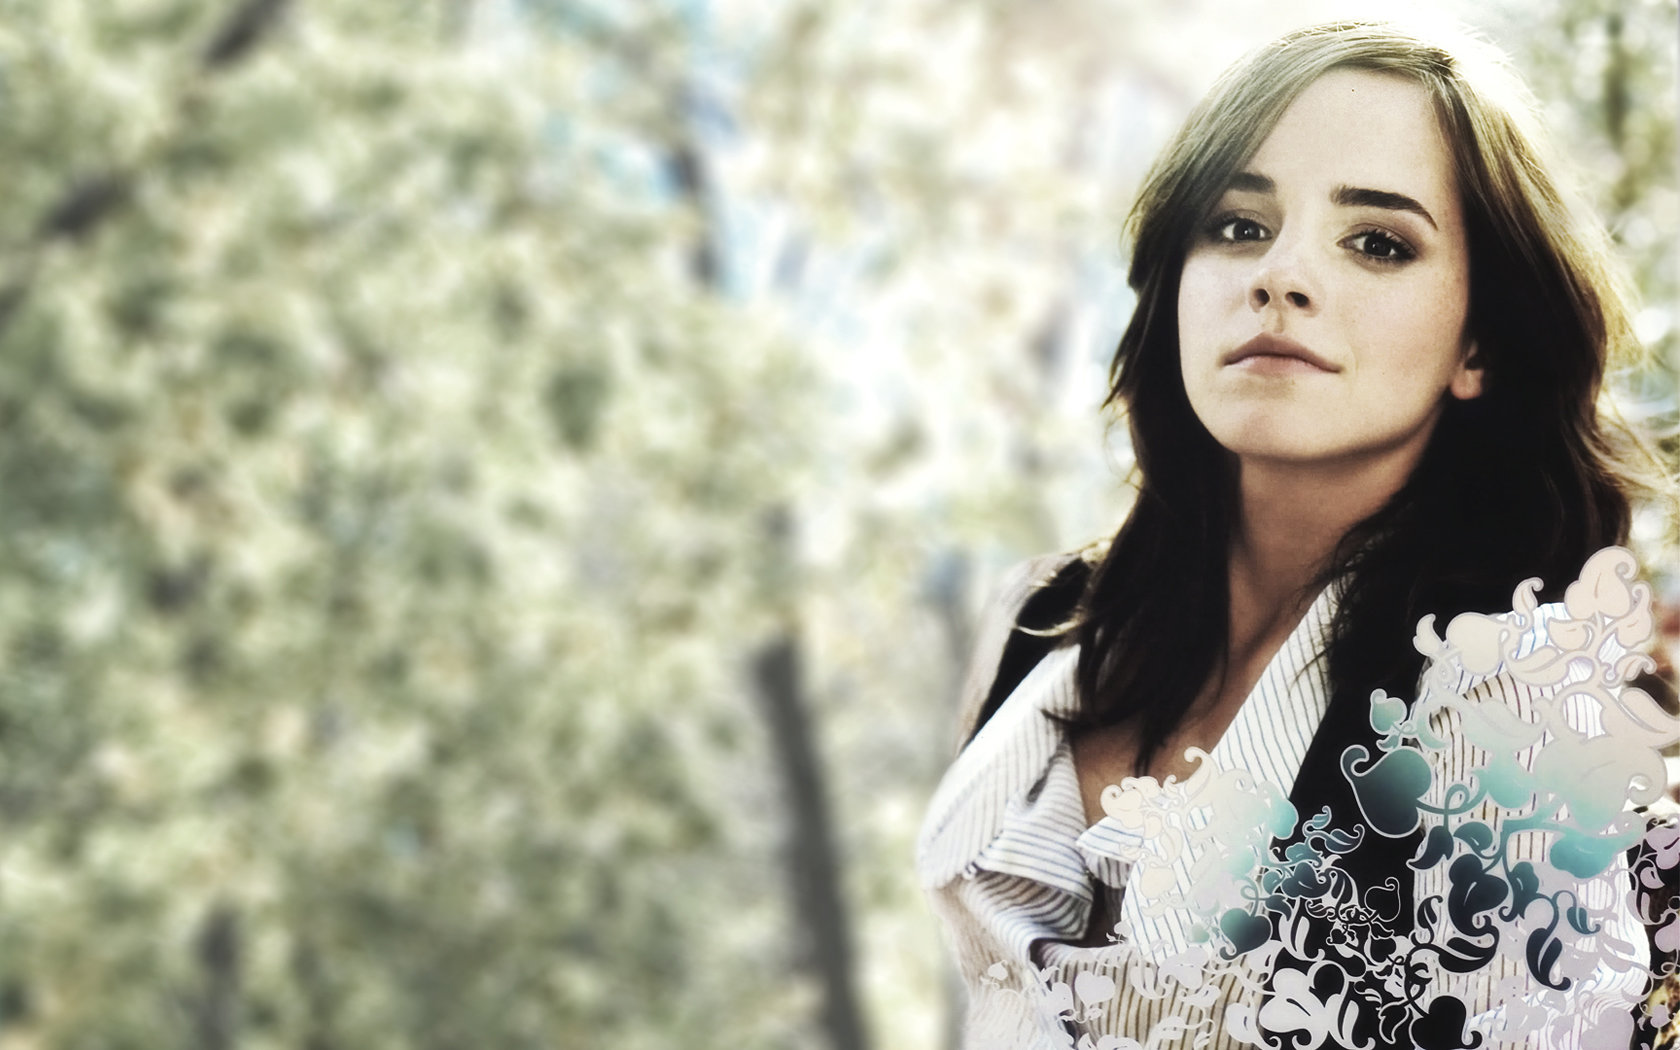 Free Emma Watson high quality wallpaper ID:250000 for hd 1680x1050 PC